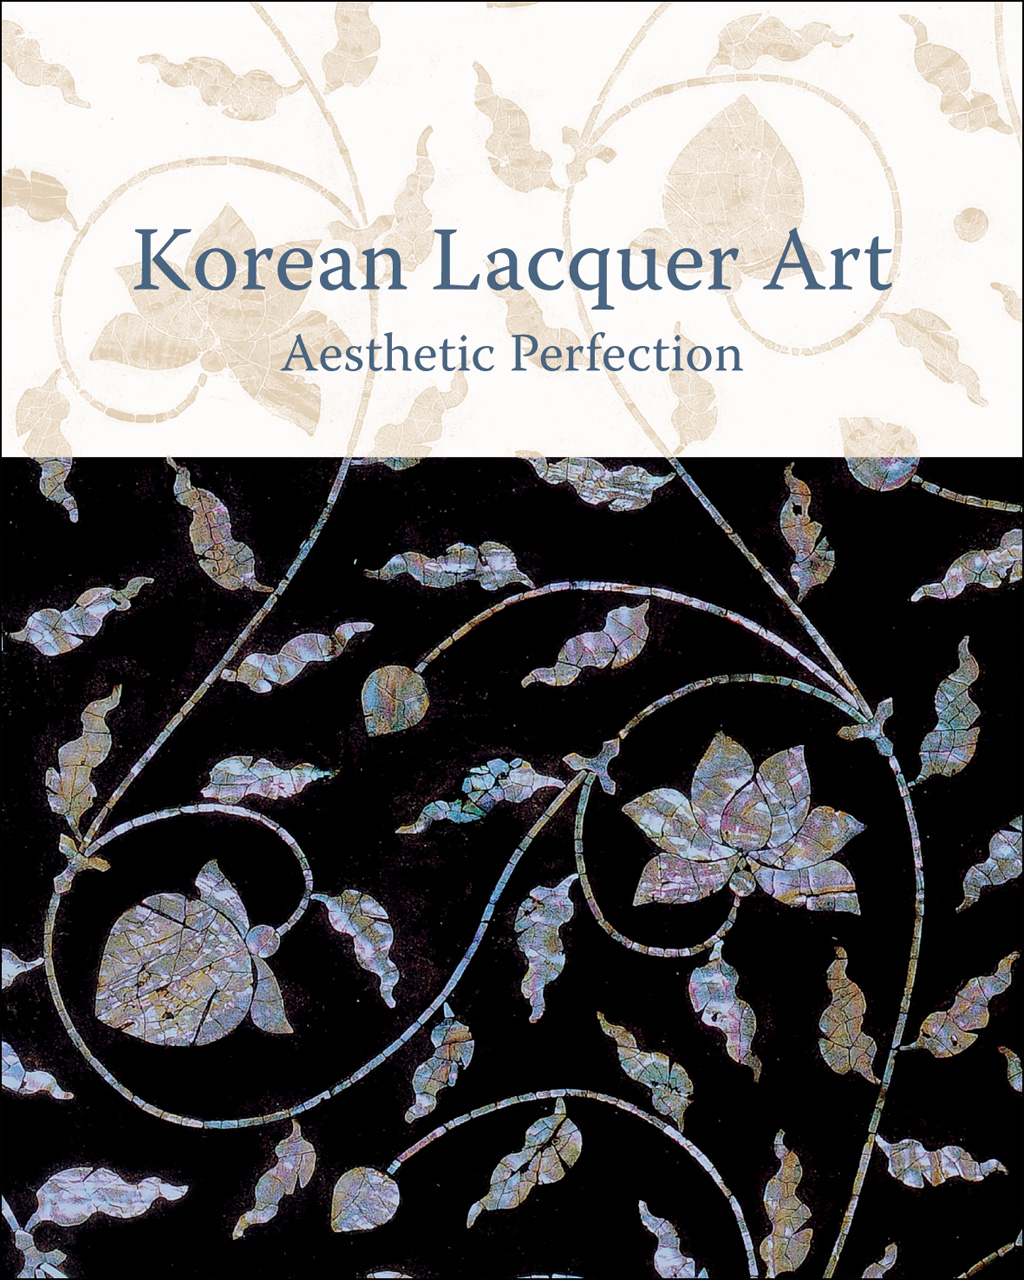 Korean Lacquer Art